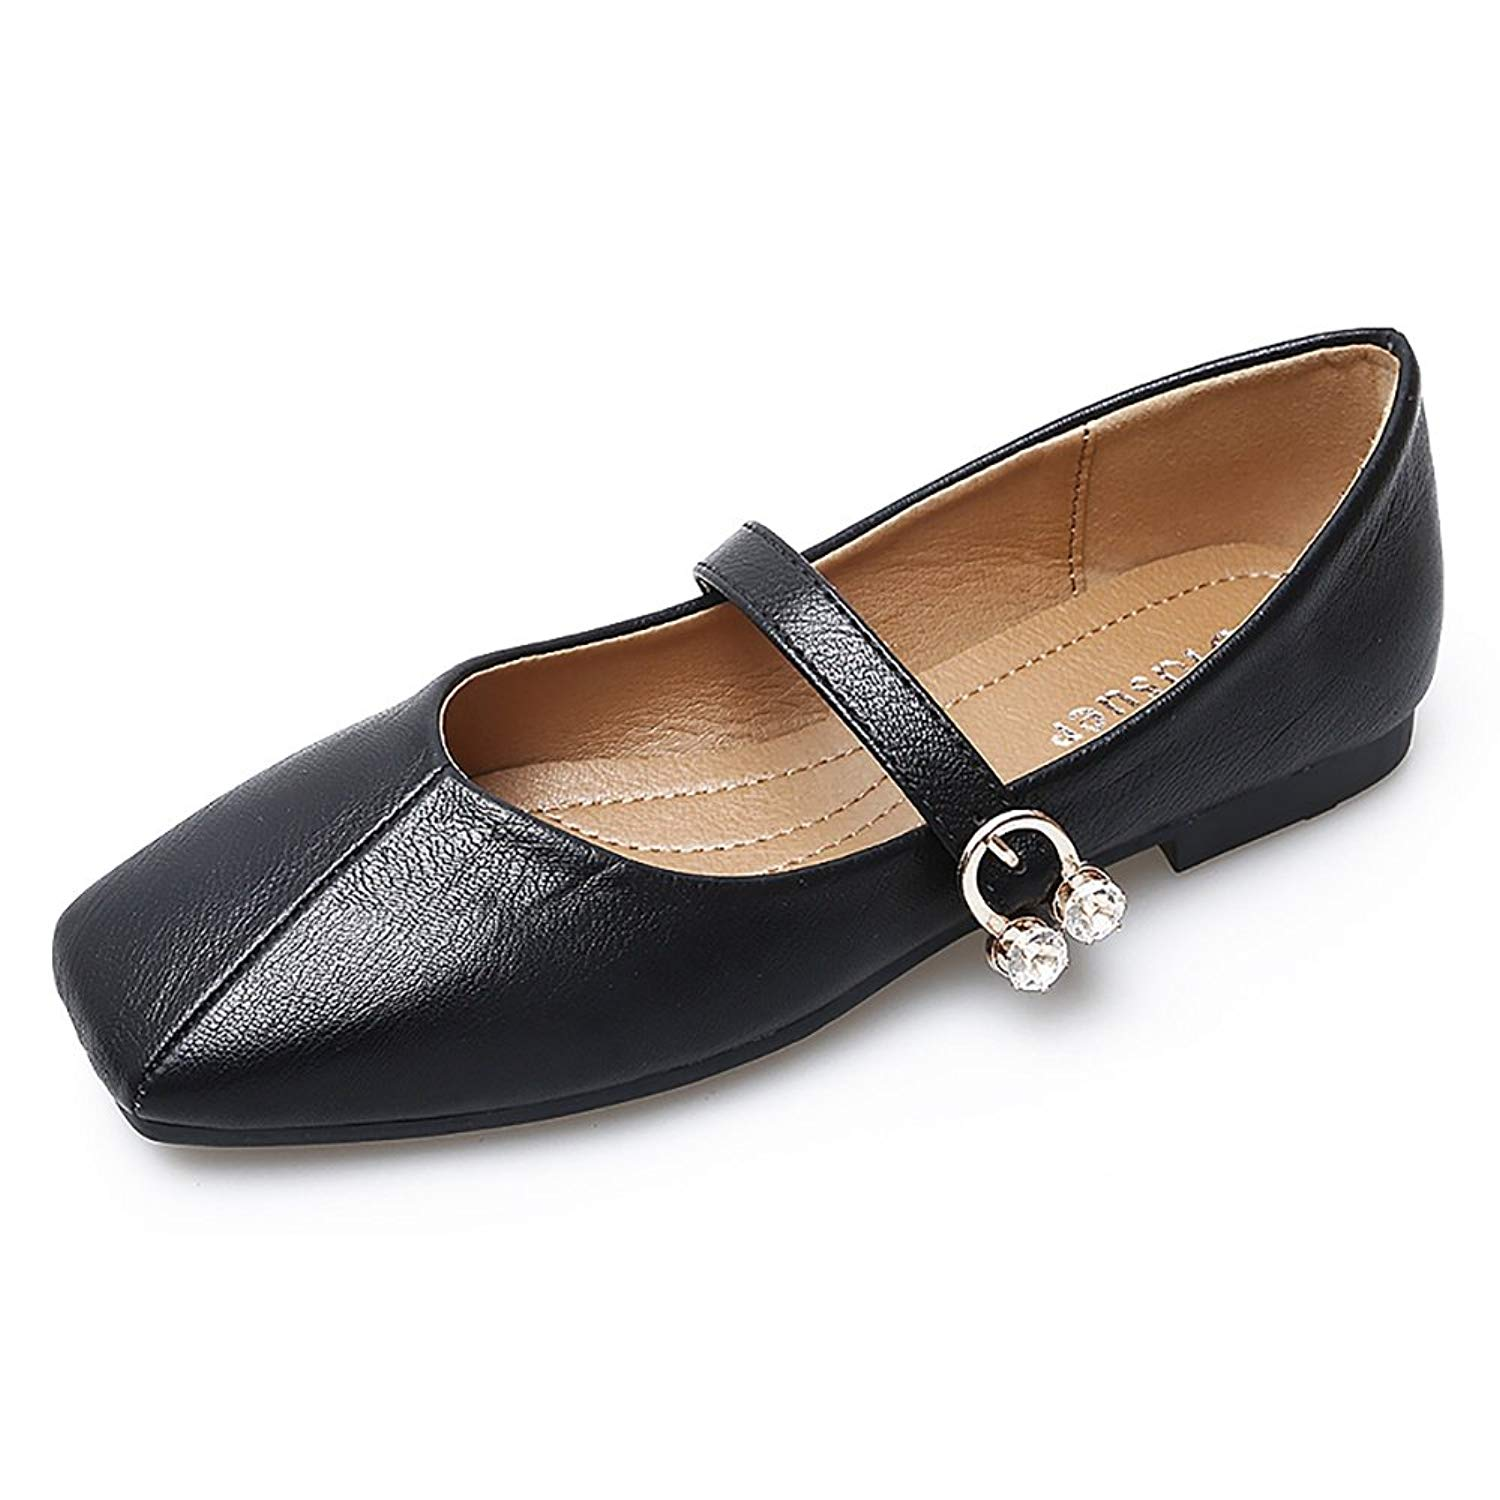 9ab1b3486 Get Quotations · Meeshine Womens Ankle Strap Mary Jane Style Ballet Flats